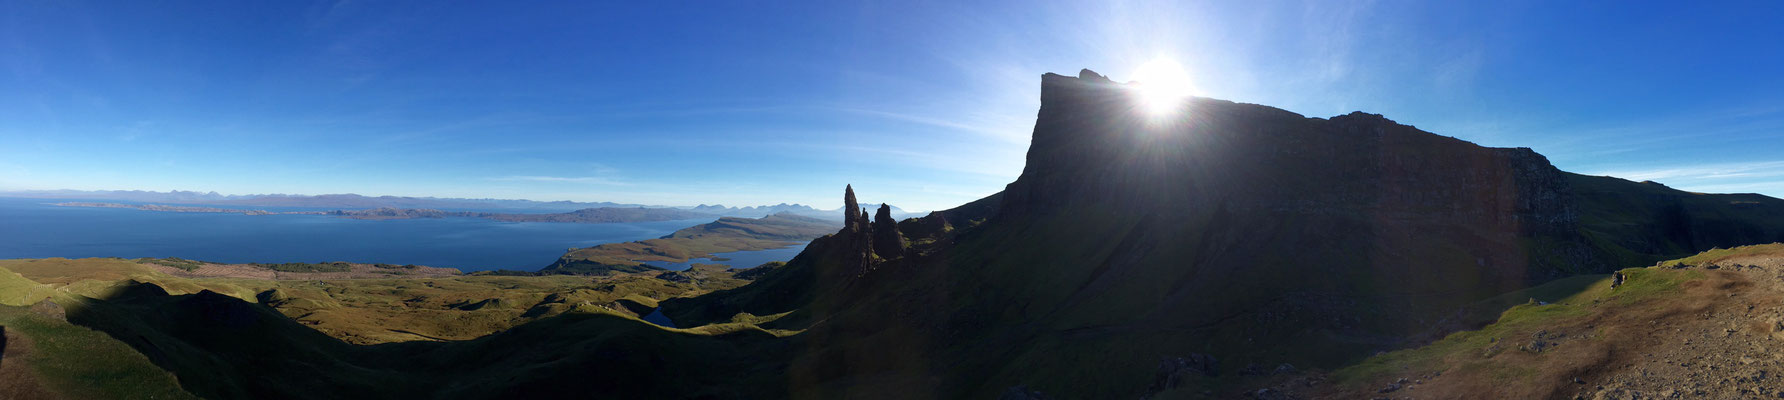 Schottland_Isle of Skye_Old Man of Storr_Die Roadies_Reisetagebuch_Wohnmobil